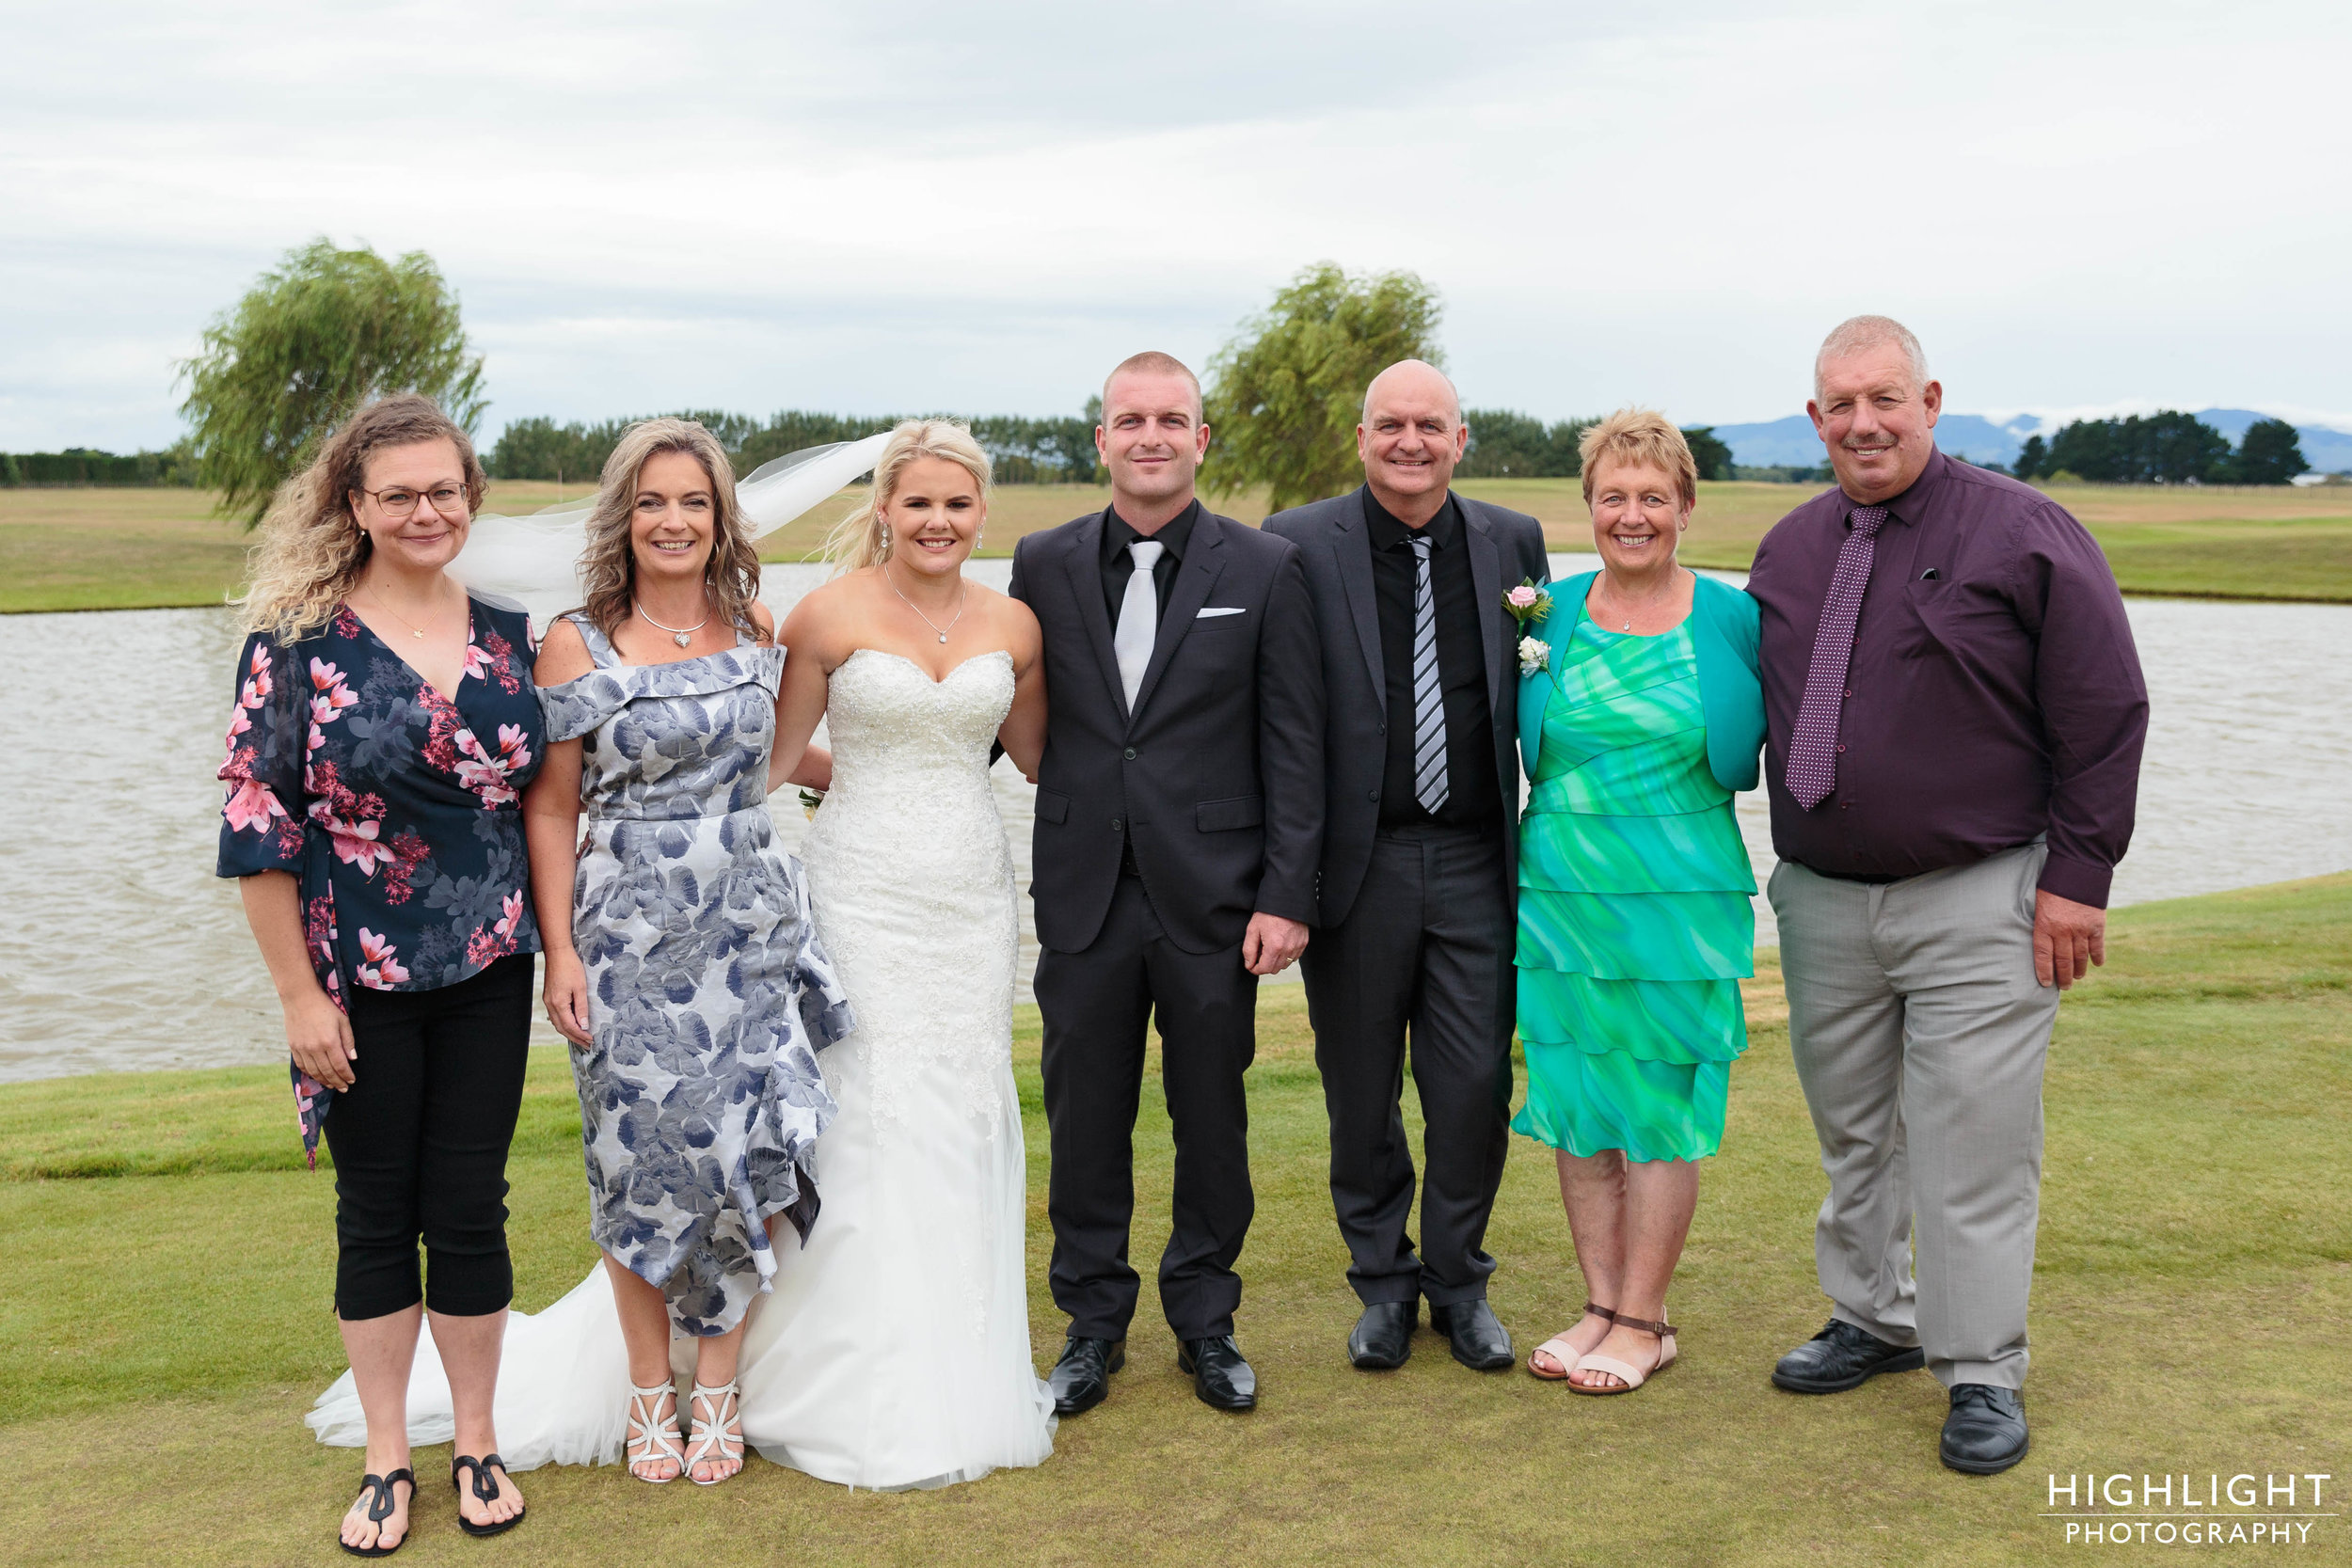 highlight-wedding-photography-new-zealand-cs-orlando-country-wedding-palmerston-north-108.jpg